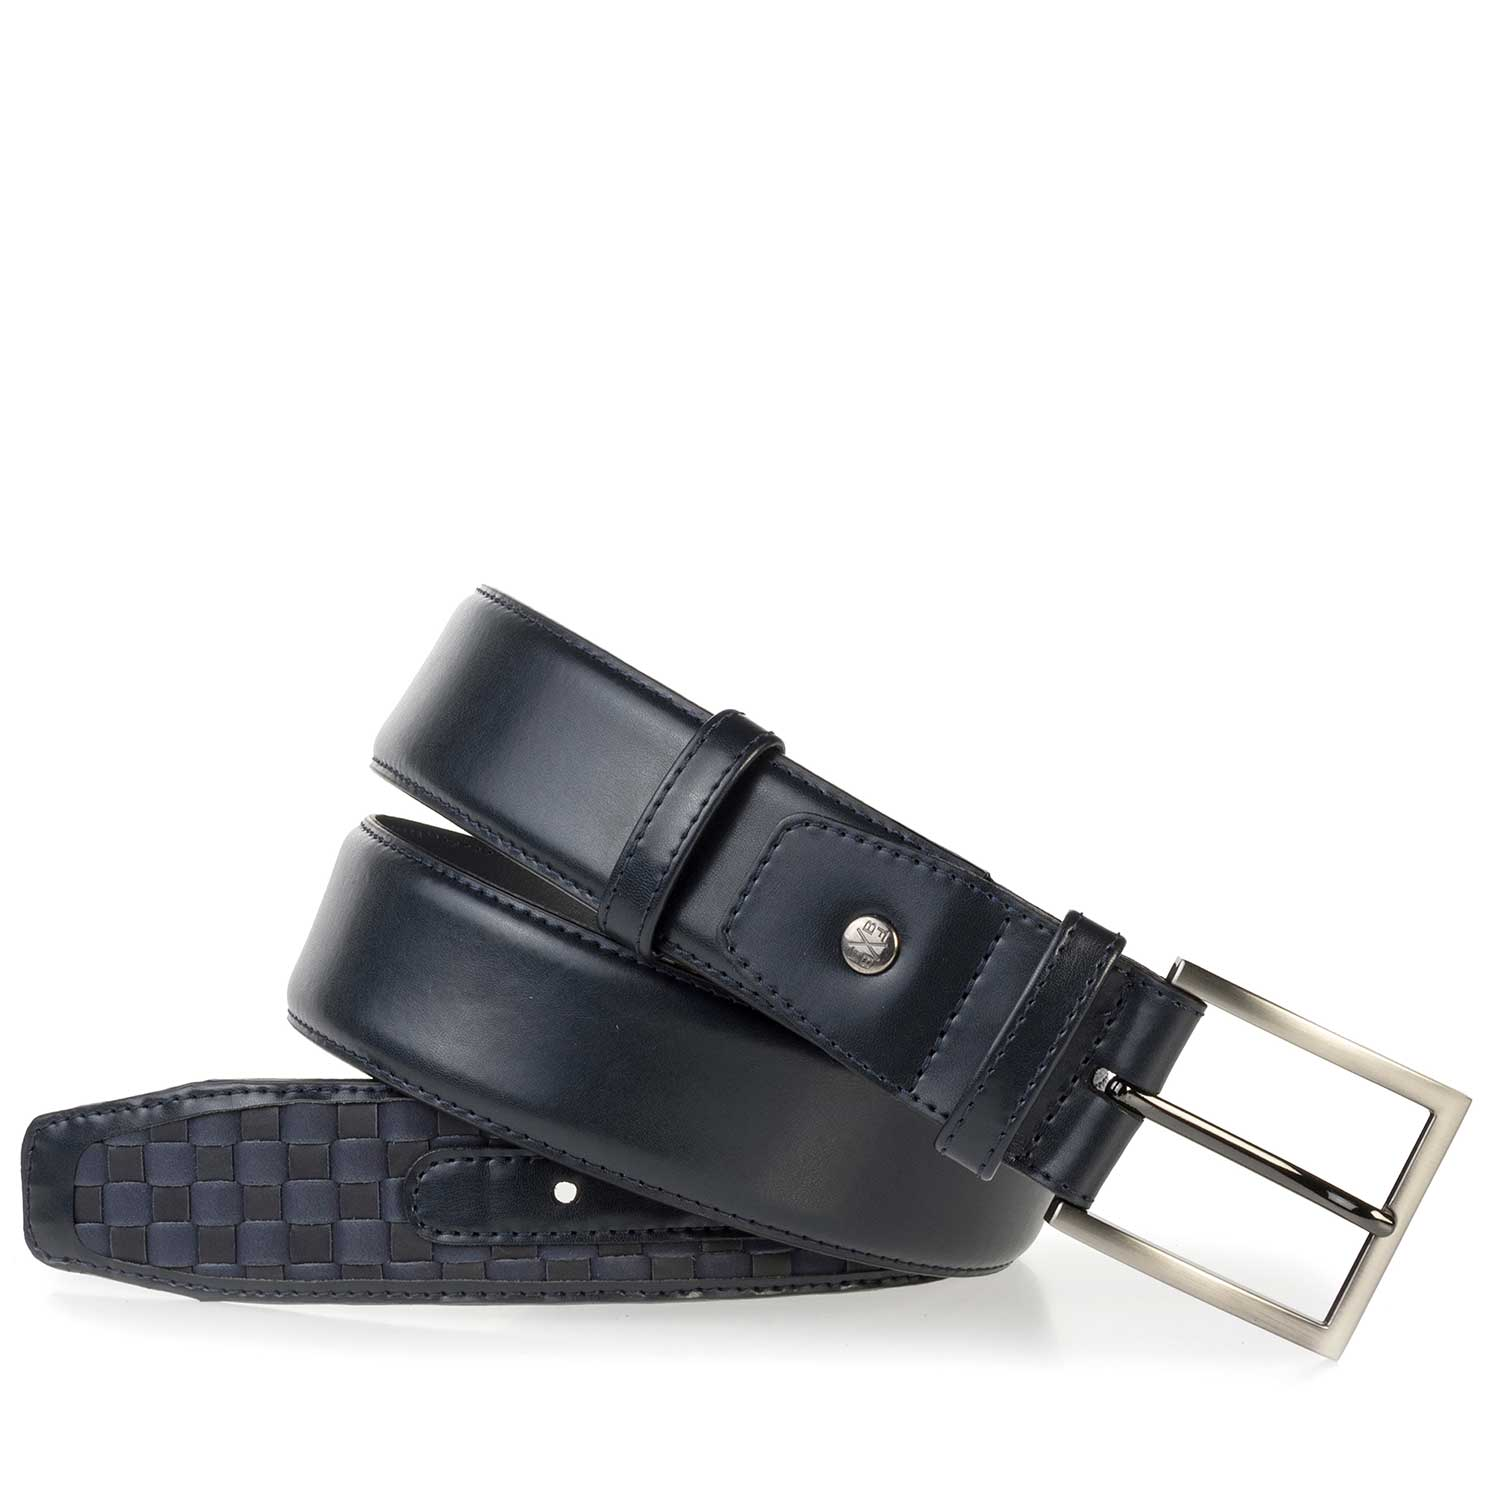 75159/06 - Premium dark blue braided leather belt